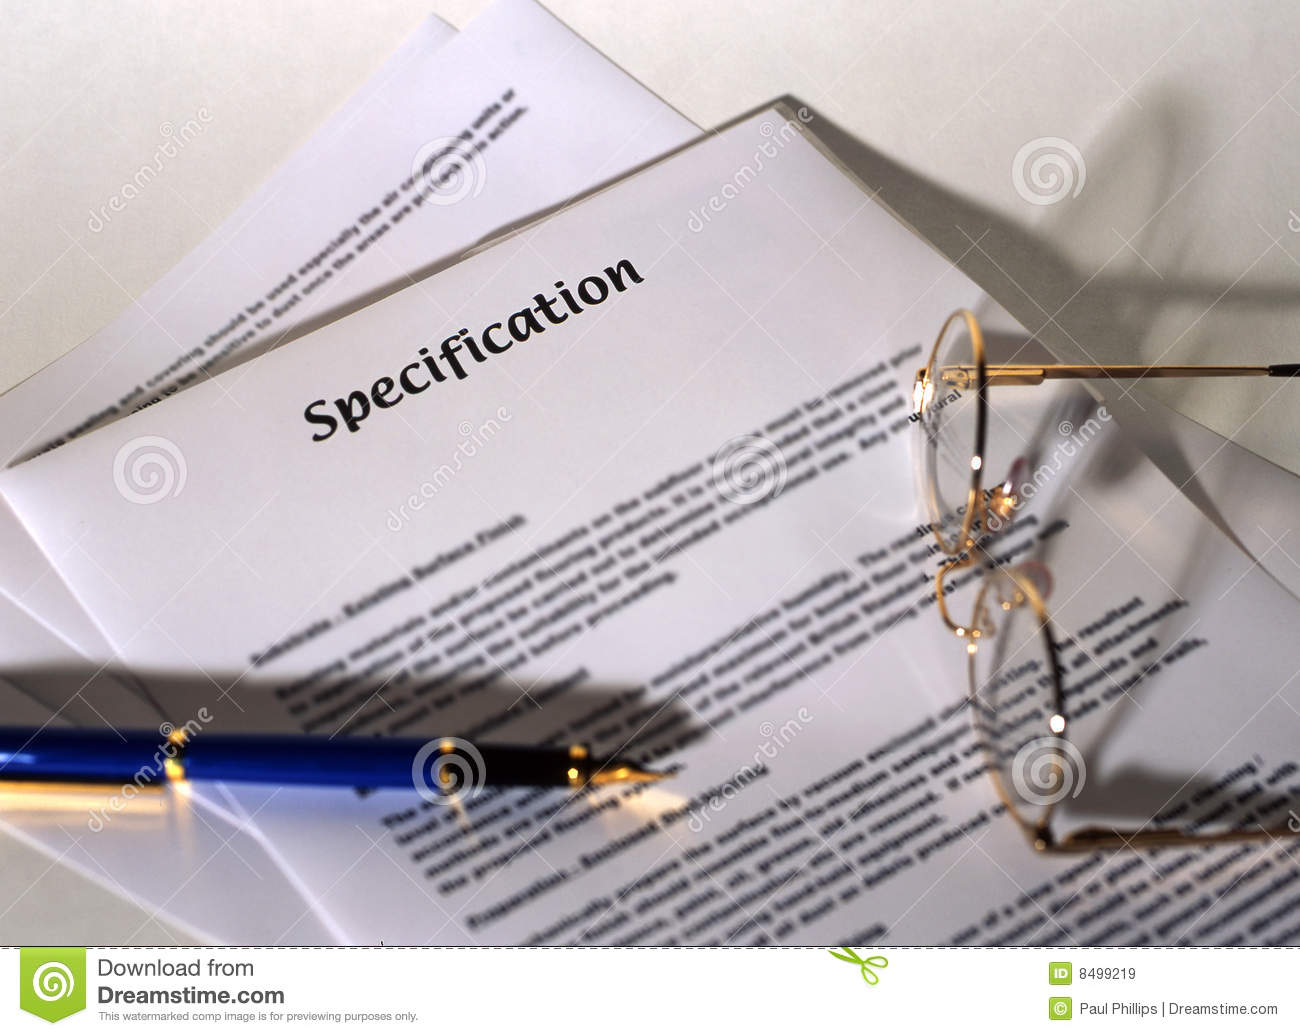 Specifikation